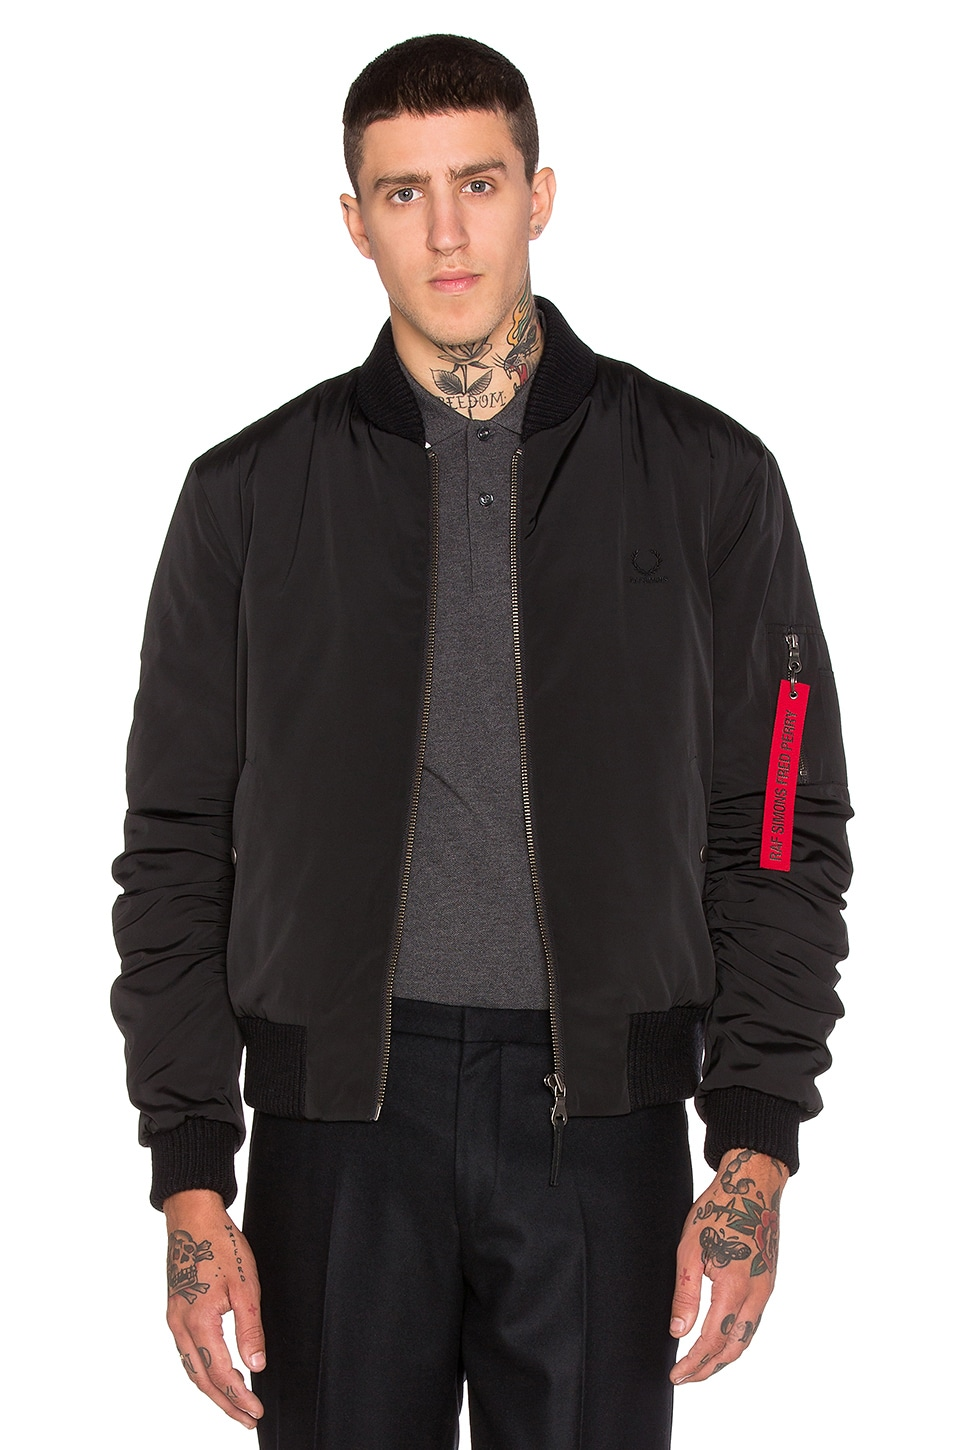 Fred Perry x Raf Simons Quilted Bomber Jacket in Soho Black | REVOLVE